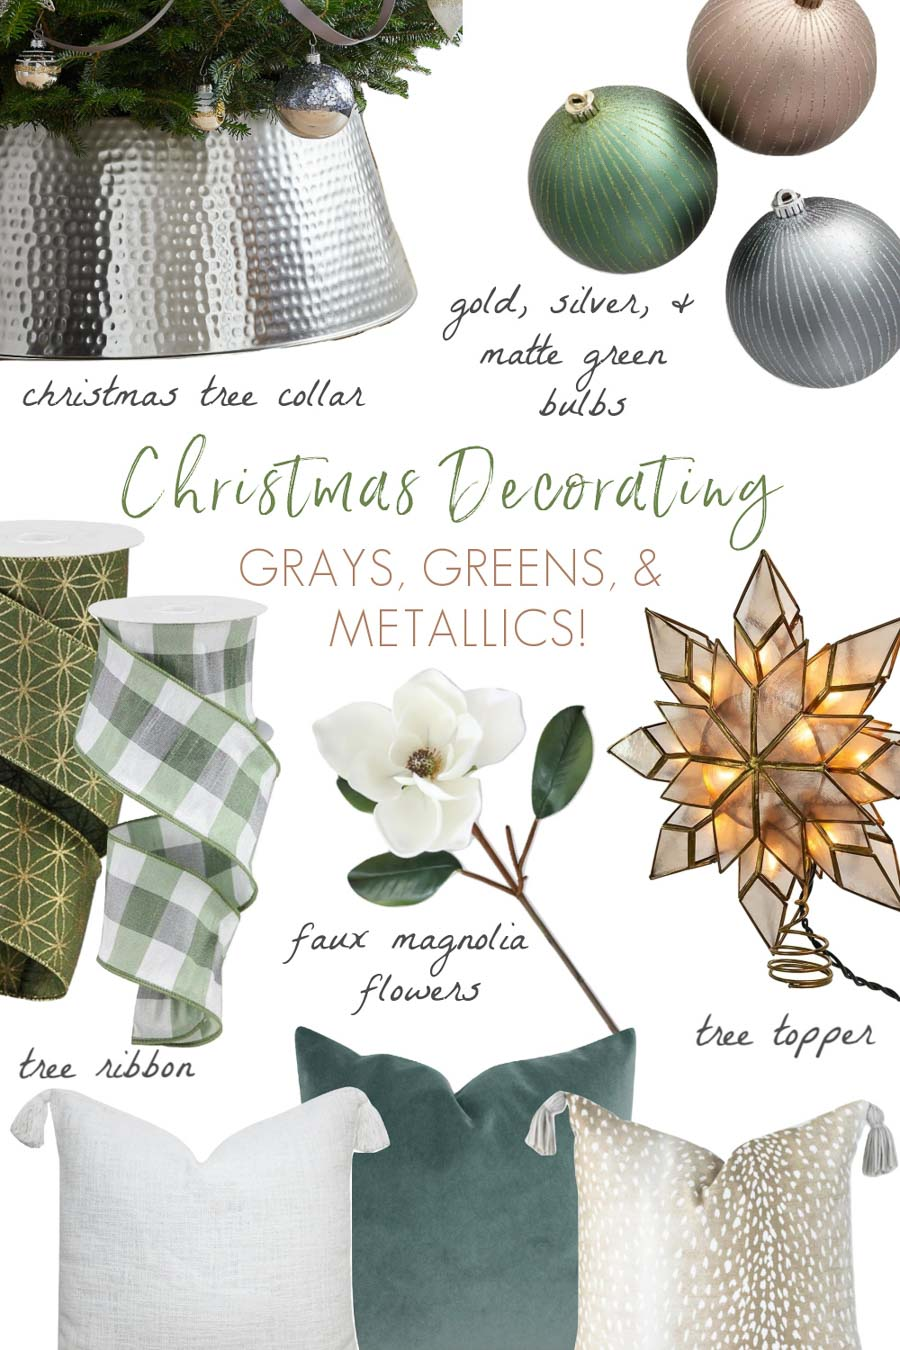 My Christmas decorating plans with grays, greens, & metallics!